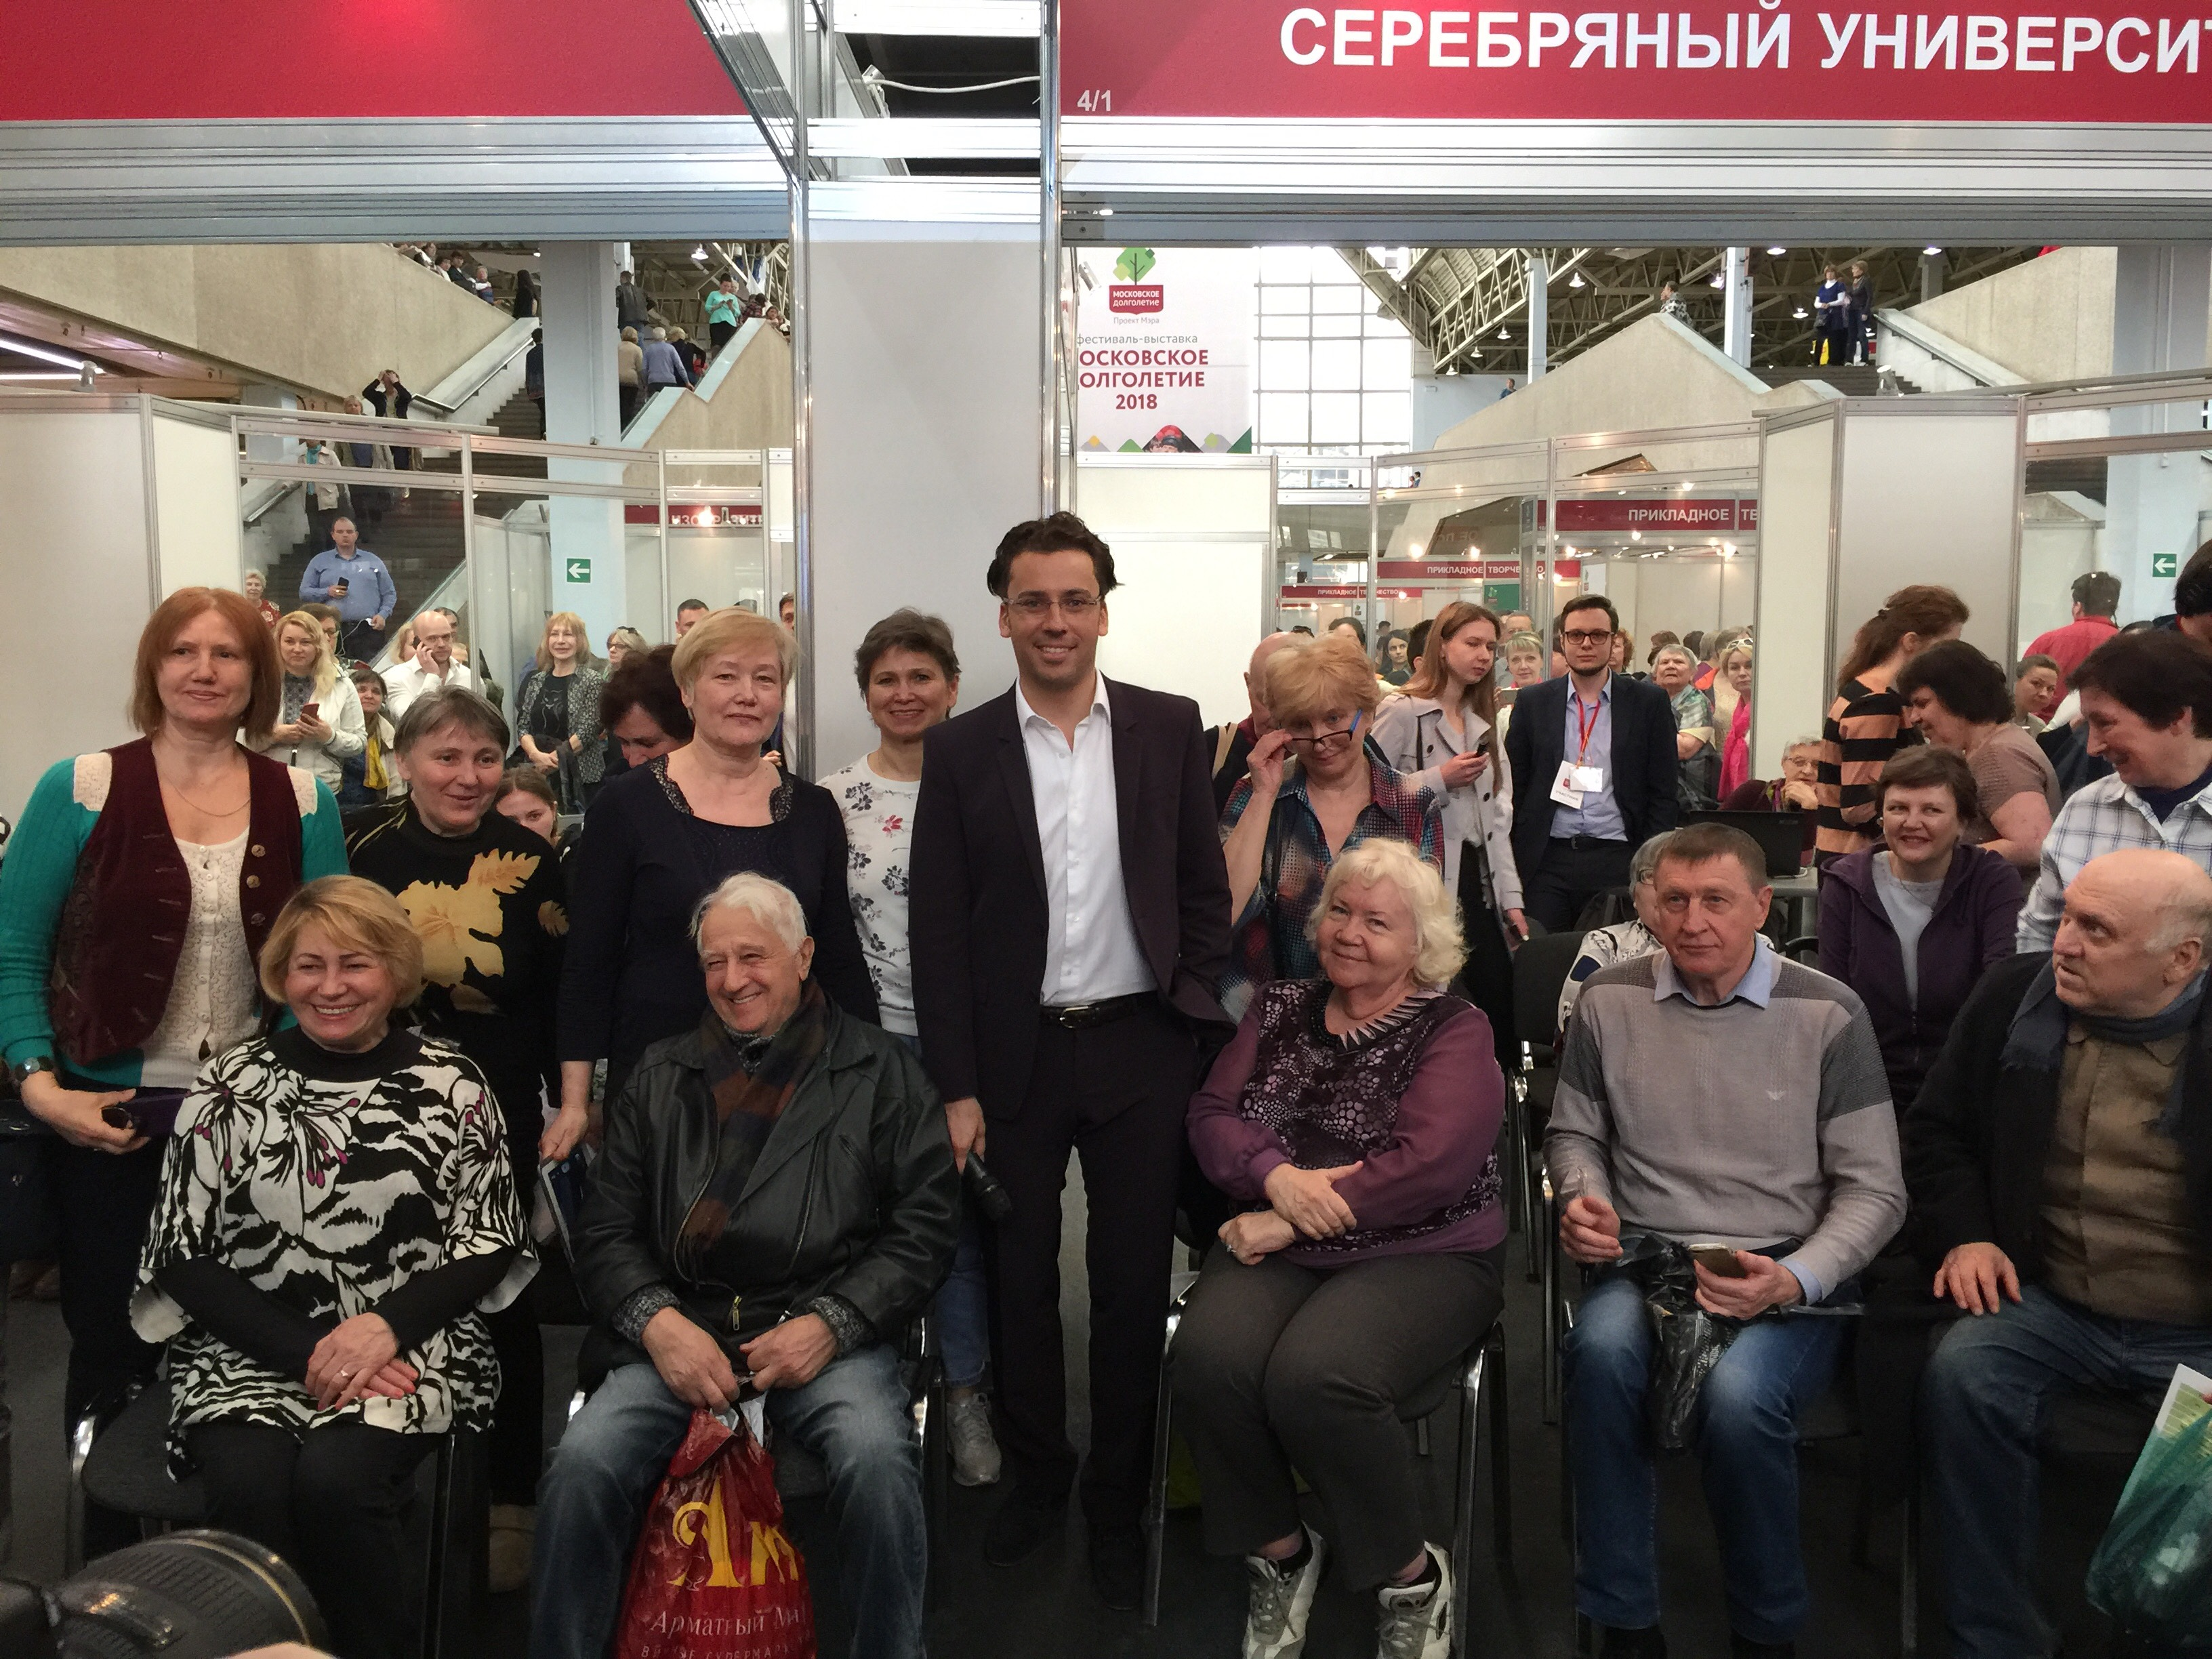 Celebrating Long-living in Moscow 2018